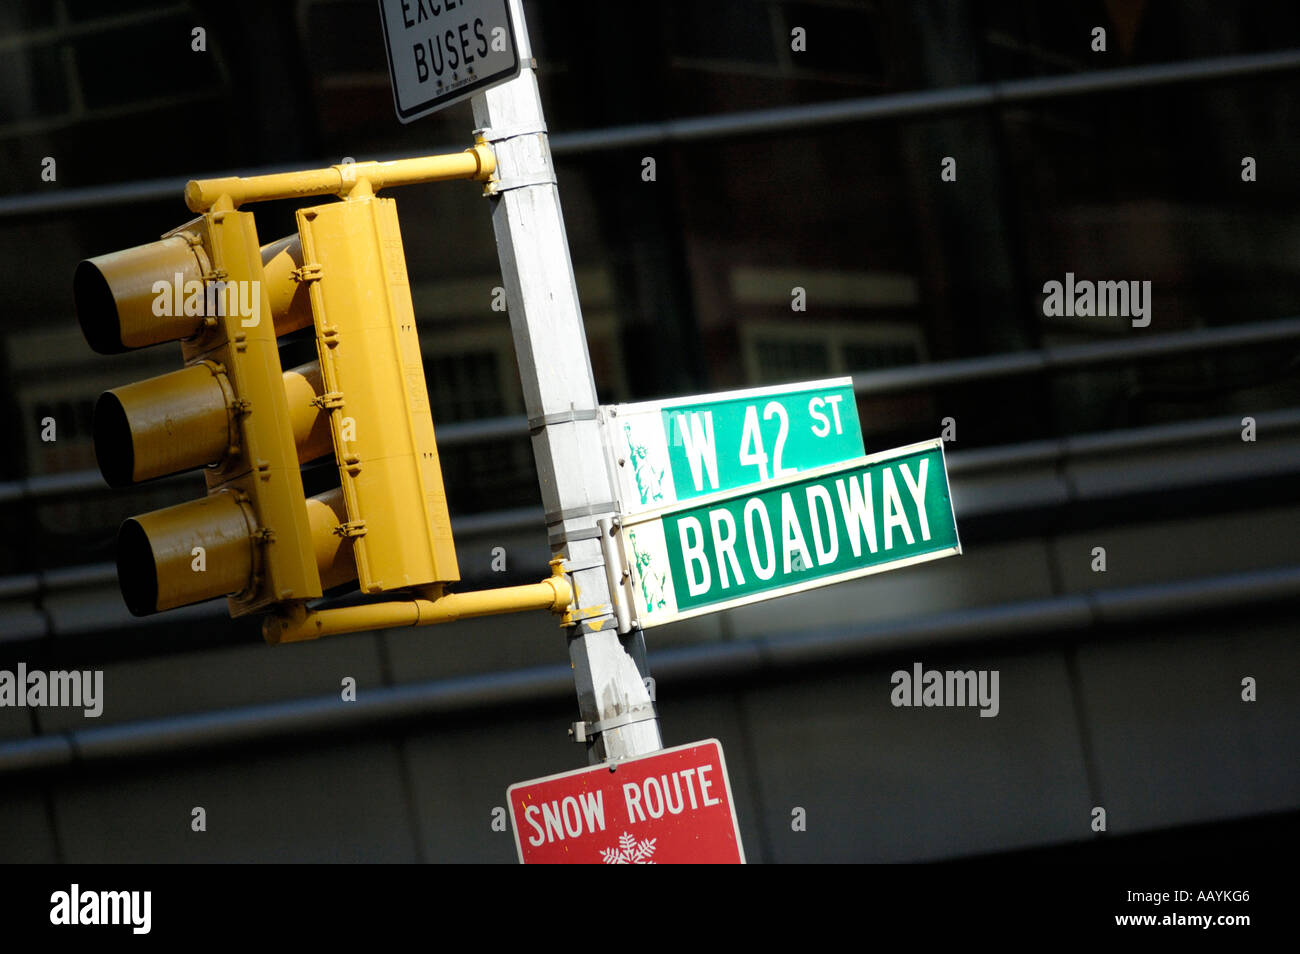 Street signs spotlit by sun at intersection of Broadway and Forty Second 42nd street, Times square, New York City - Stock Image